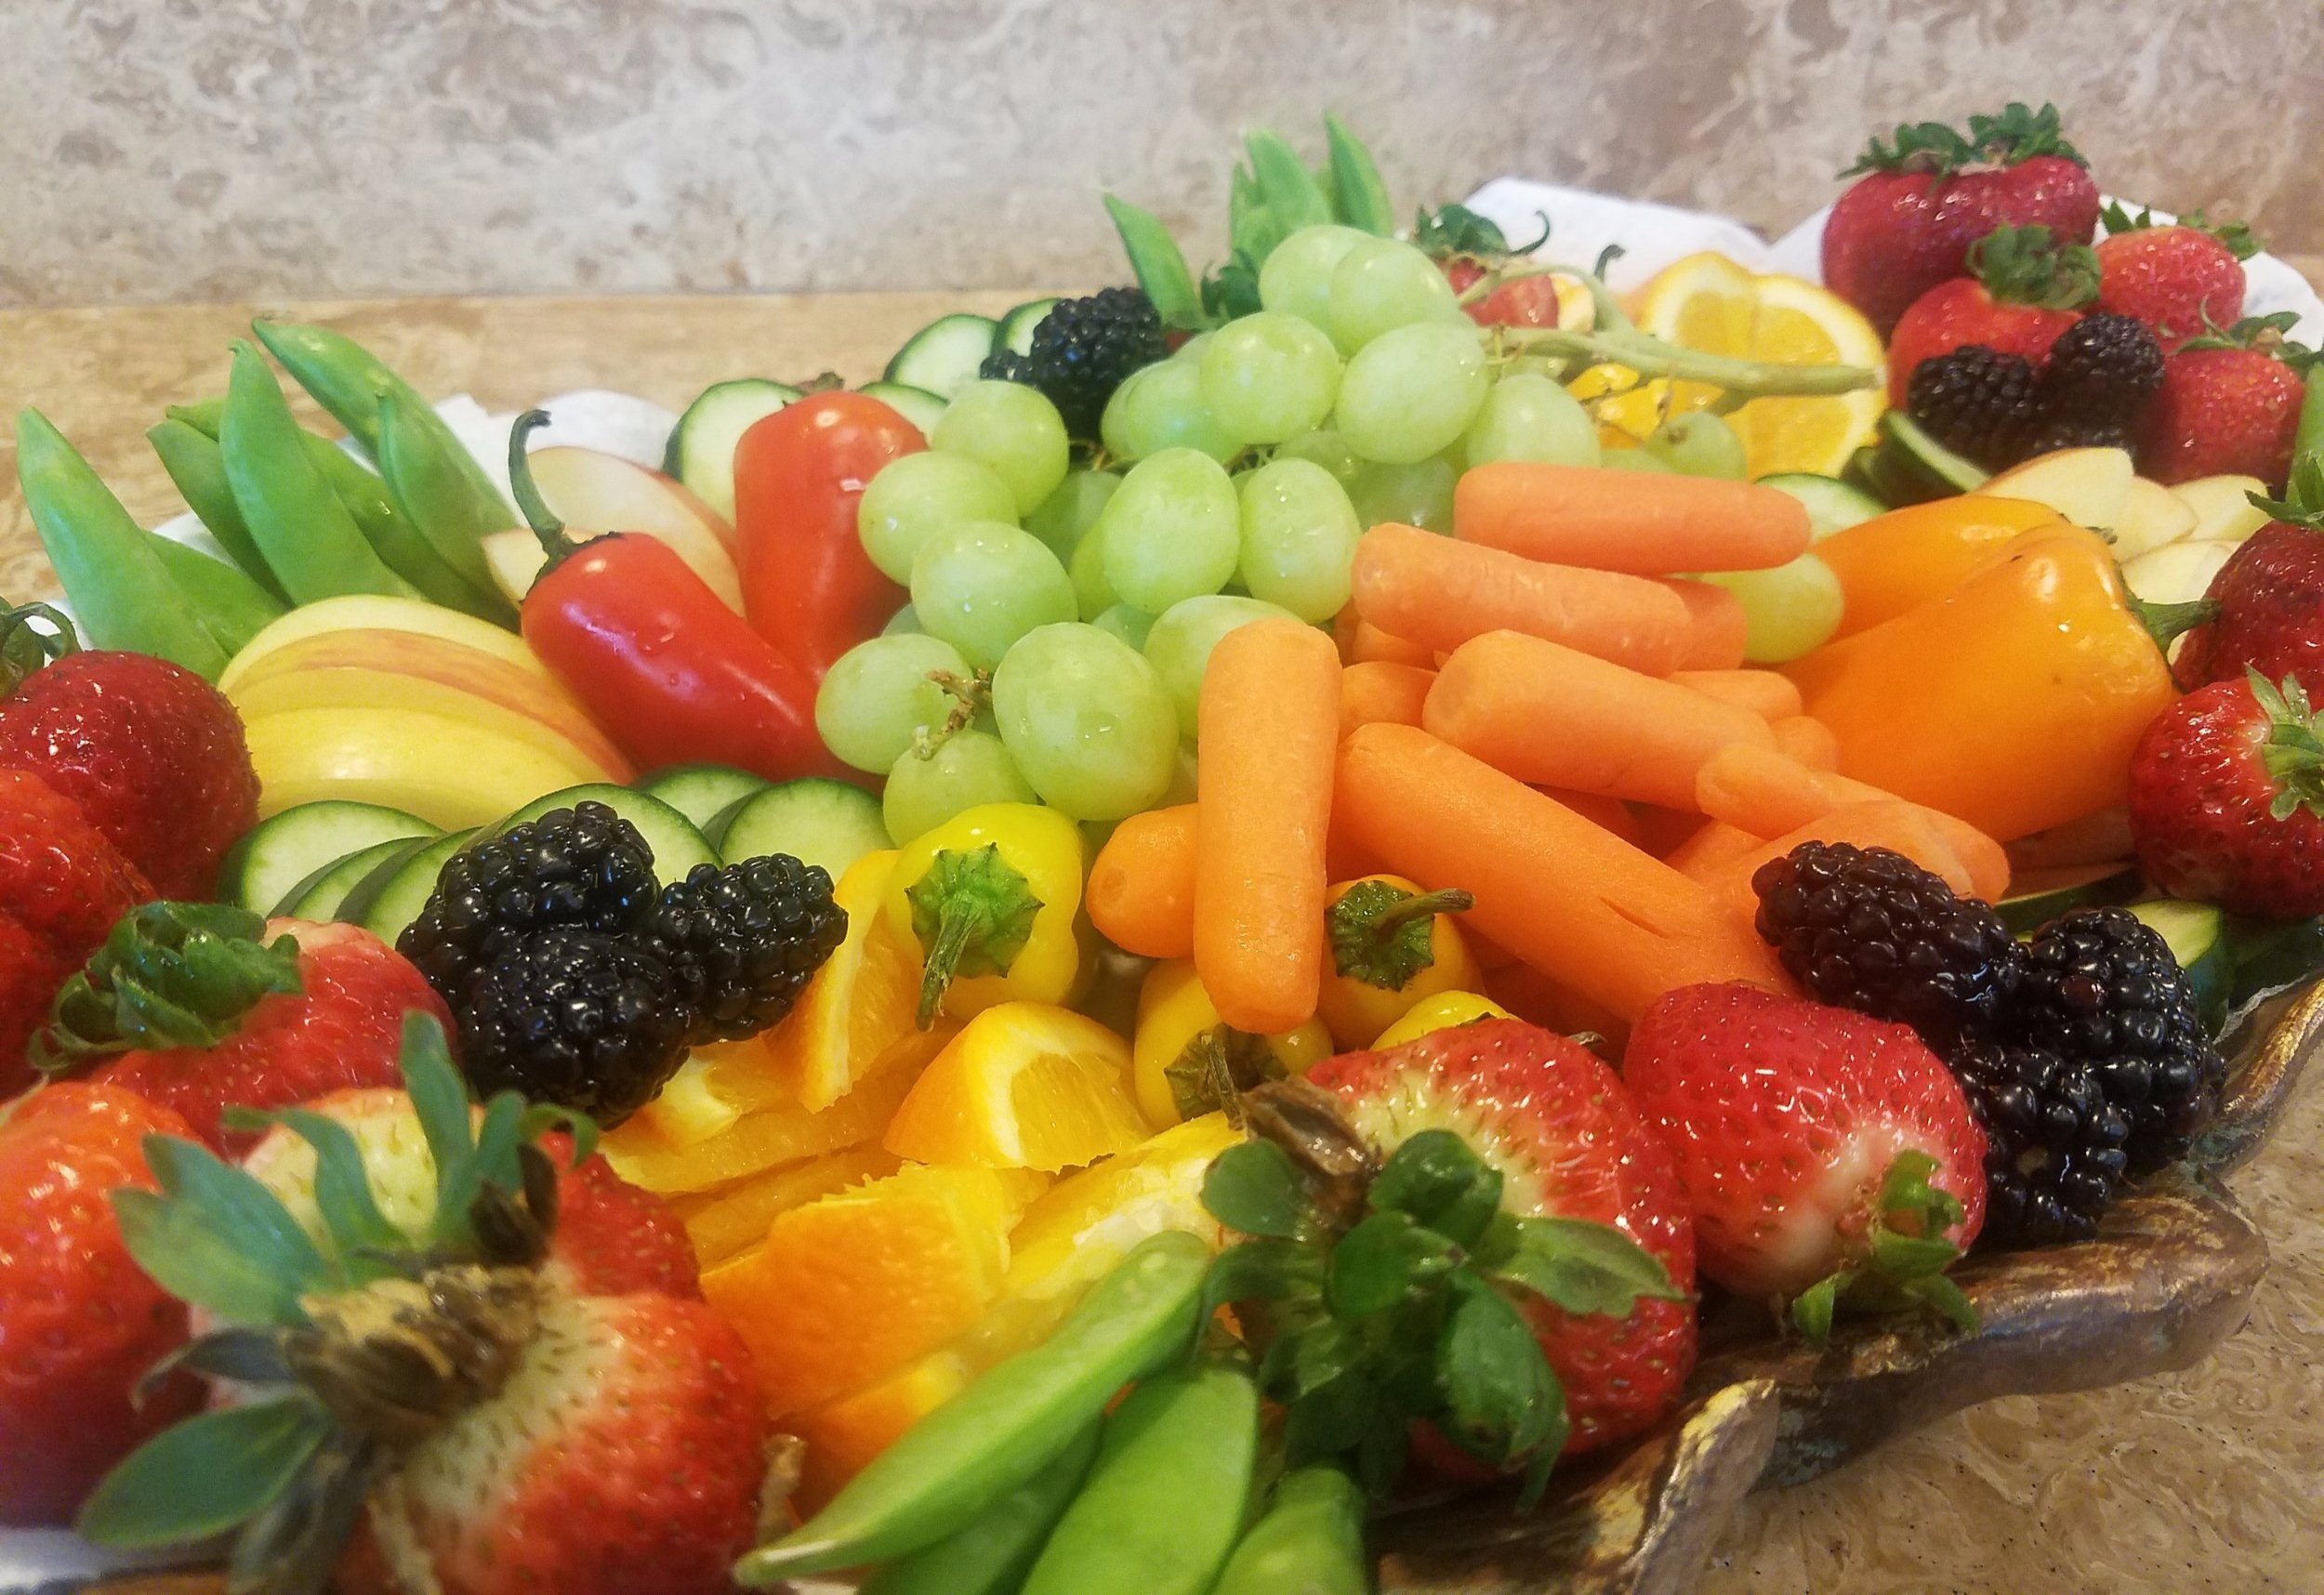 Colorful vegetable and fruit platter